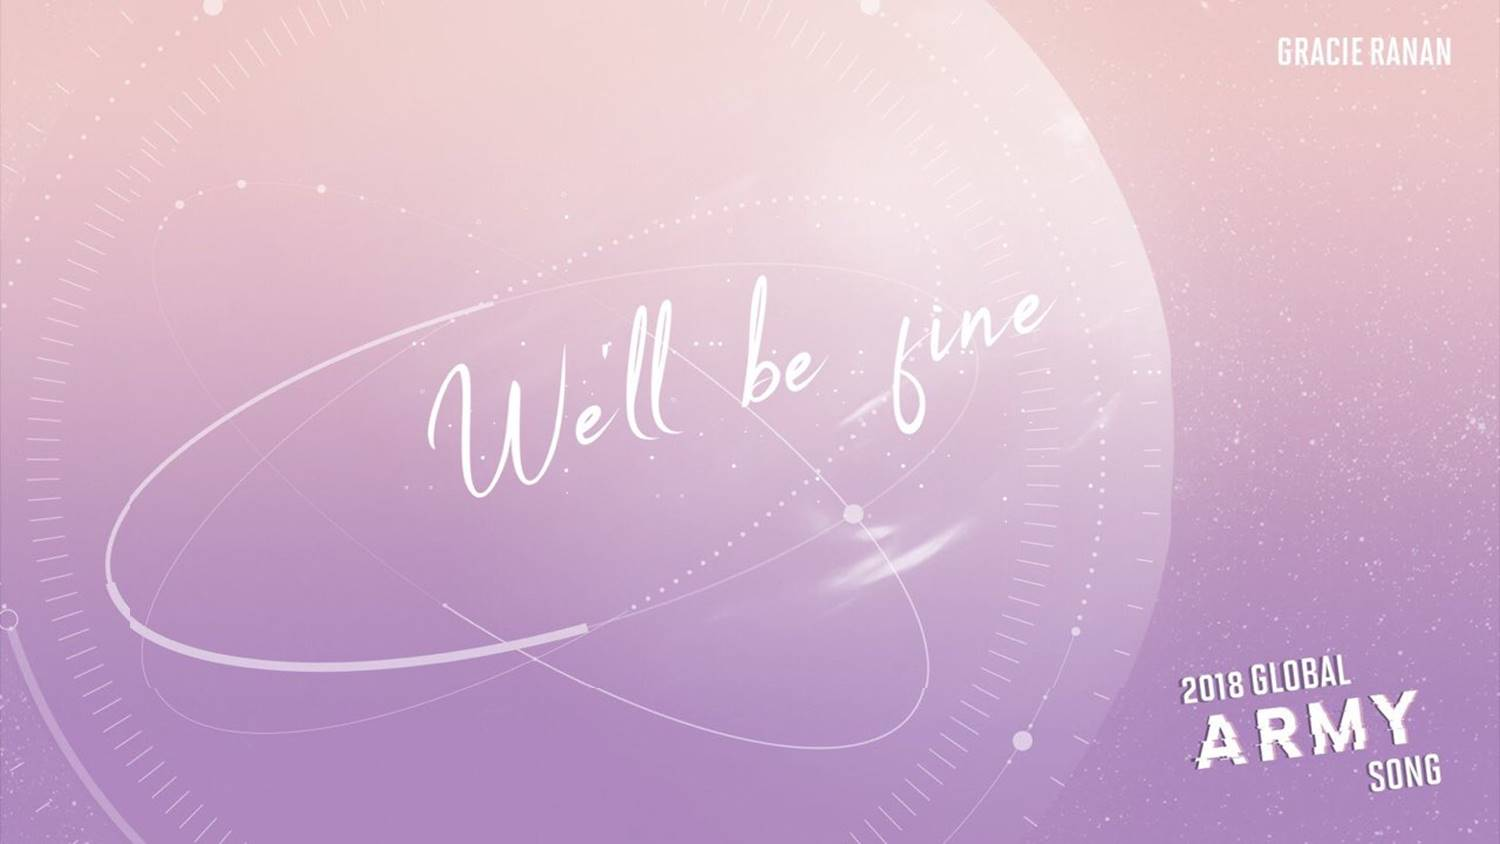 We'll Be Fine - Gracie Ranan ft Army